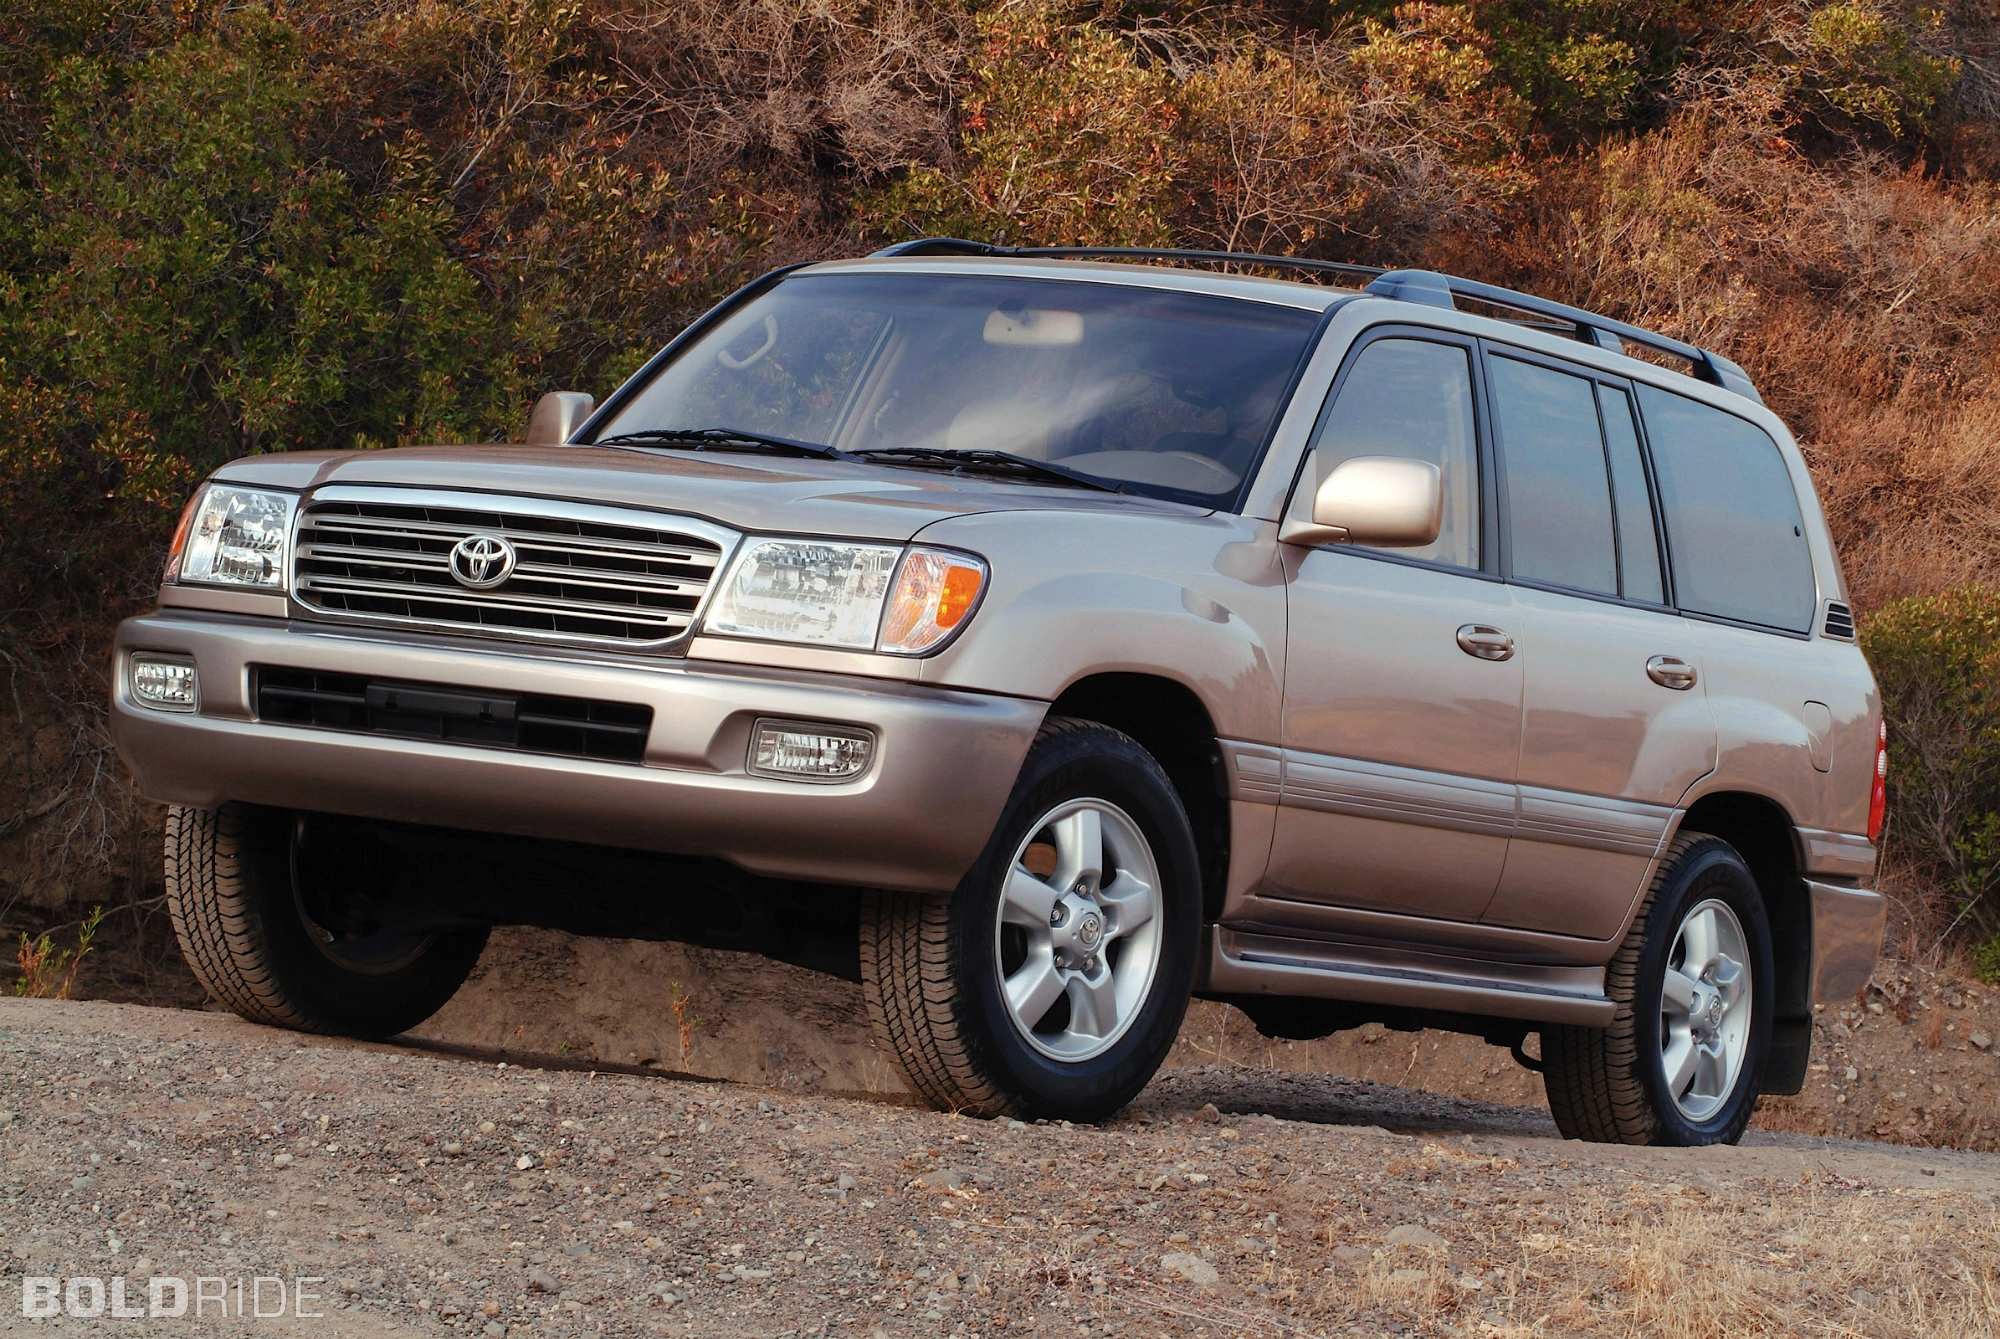 Captivating 2003 TOYOTA LAND CRUISER   Image #5